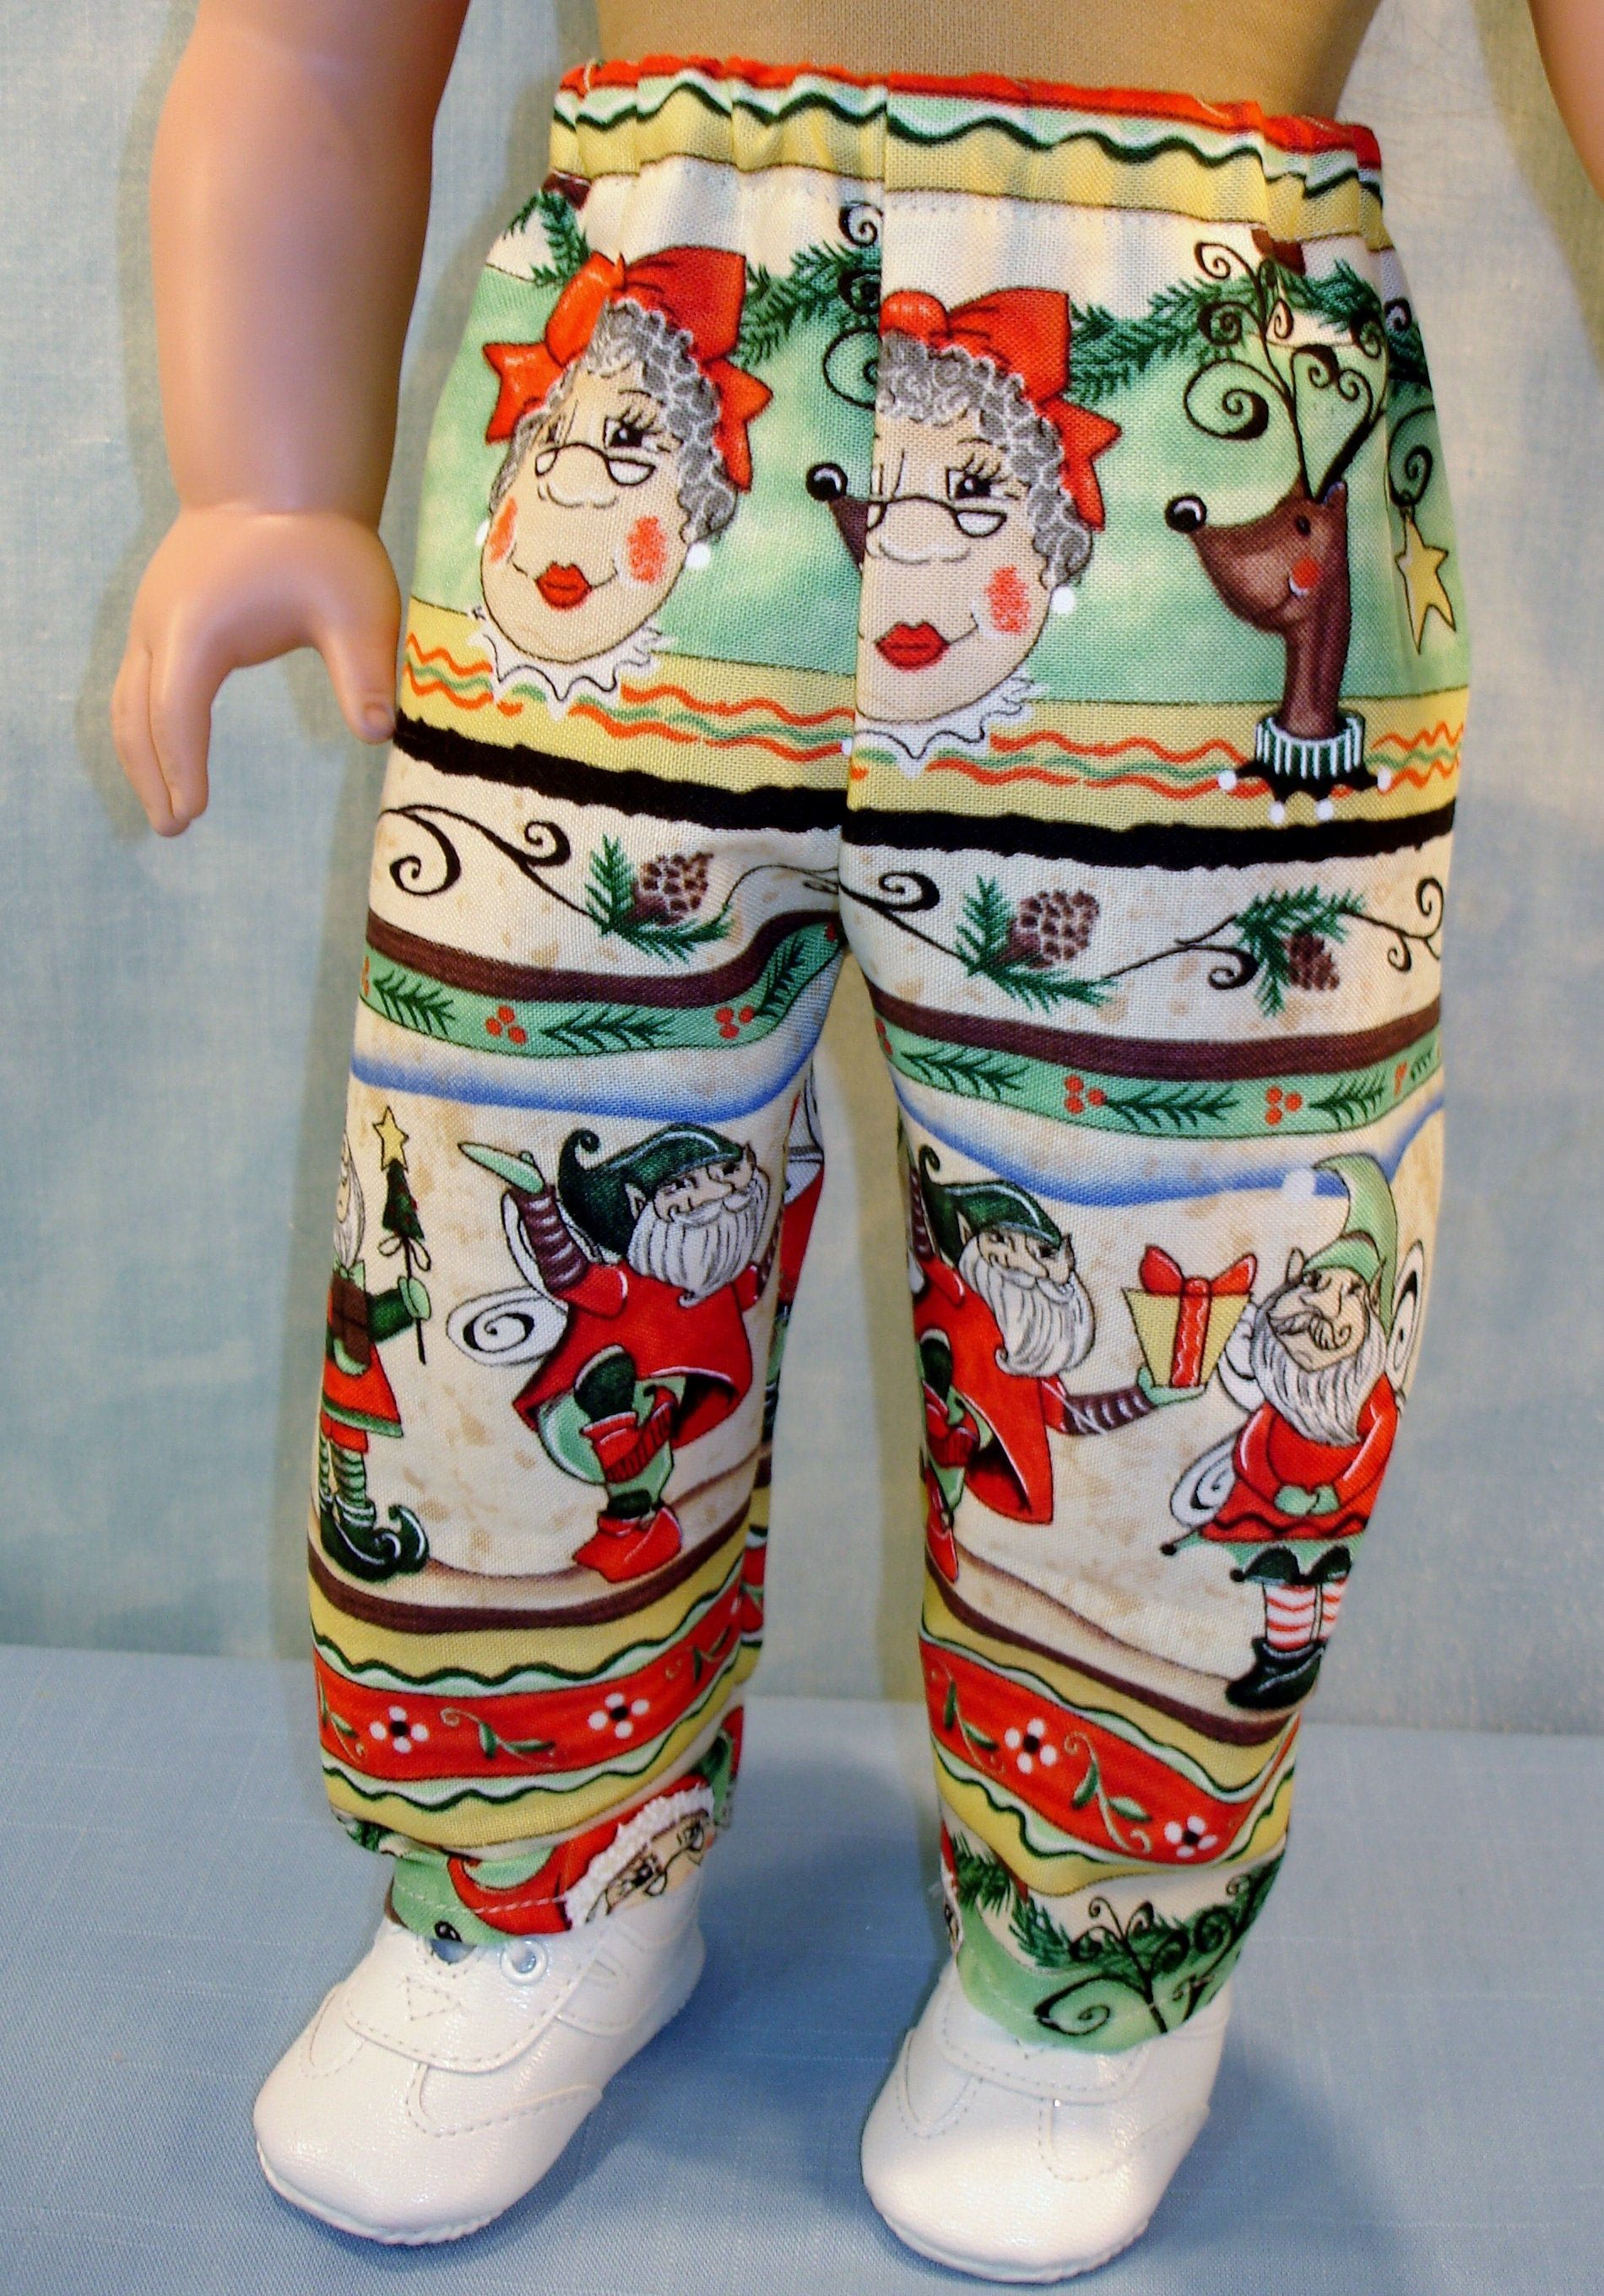 18 Inch Doll Clothes - Santas Elves and Reindeer Christmas Pants handmade by Jane Ellen to fit 18 inch dolls #18inchdollsandclothes